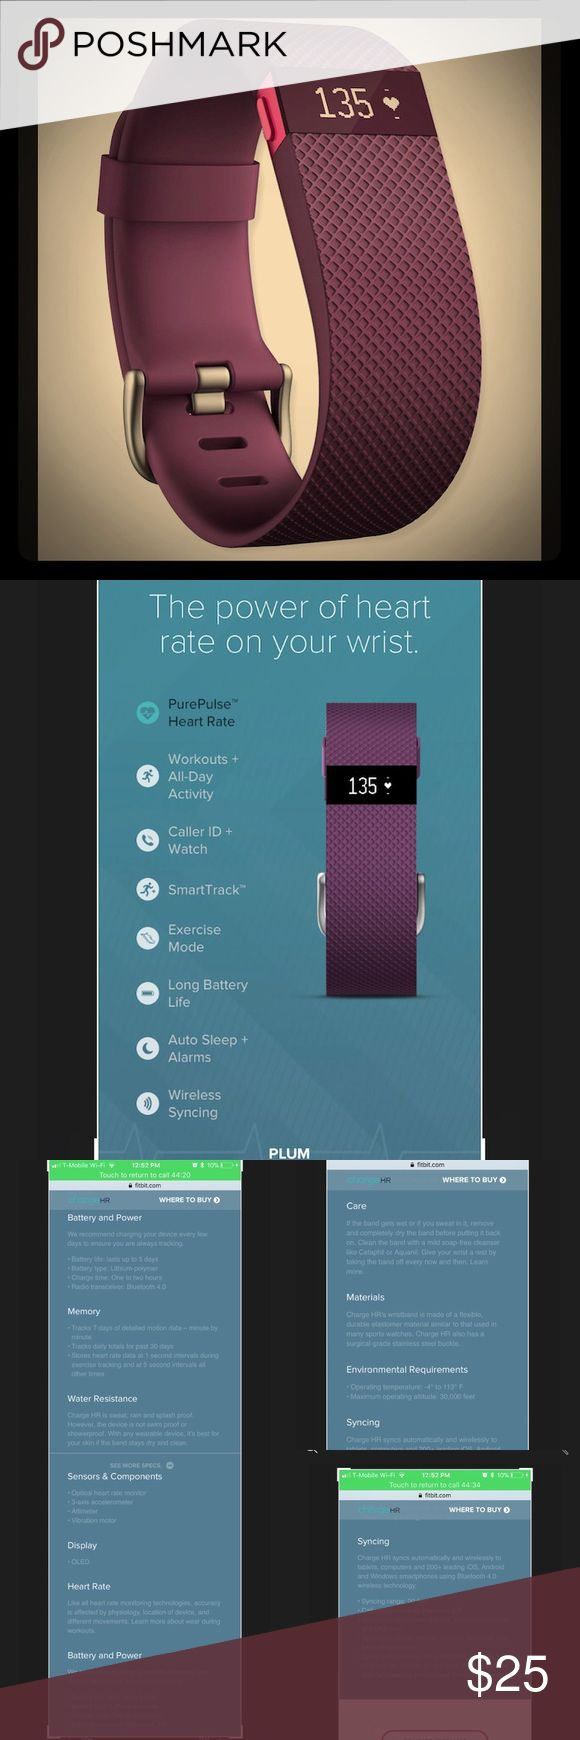 """FitBit Charge HR in Plum and Large Band + Charger FitBit Charge HR in Plum and Large Band + Charger. Large band fits 6.2"""" to 7.6"""". Only worn a few months since they sent me the wrong color. Works perfectly and is in great condition. Band has been cleaned, sanitized and is ready to help someone else with their fitness goals! See photos for a list of everything this tracker does...it's a lot! The reminders, heart rate and sleep tracker were really helpful for me. 💜 FitBit Accessories Watches"""